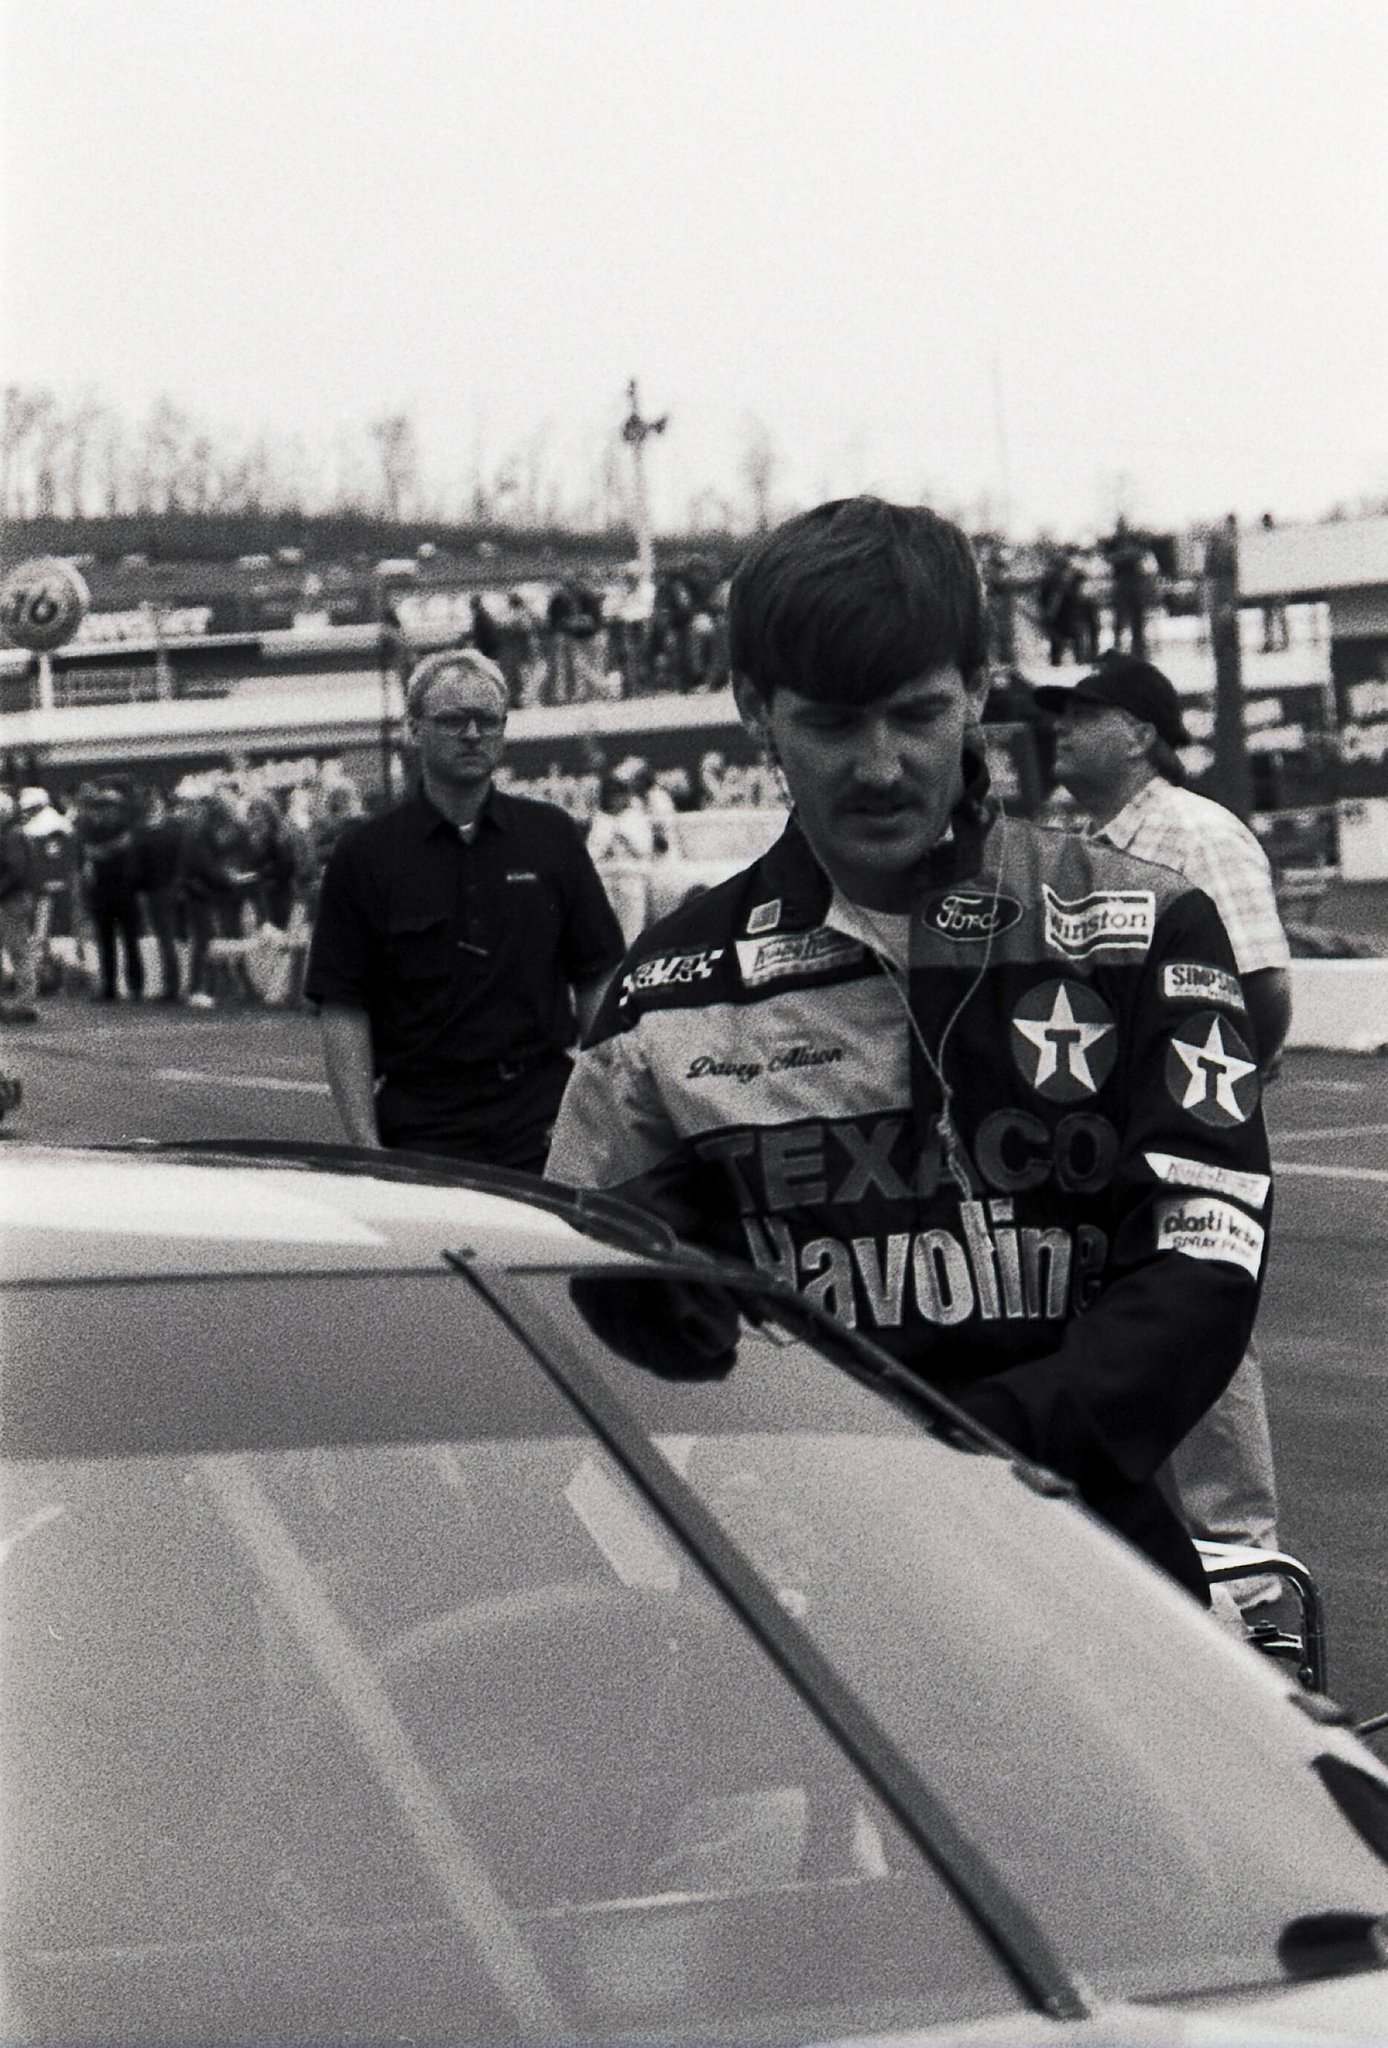 THROWBACK THURSDAY: Davey Allison jumps into his @Ford before the 1991 Valleydale 500 @BMSupdates #NASCAR http://t.co/4r5ycWWu4T